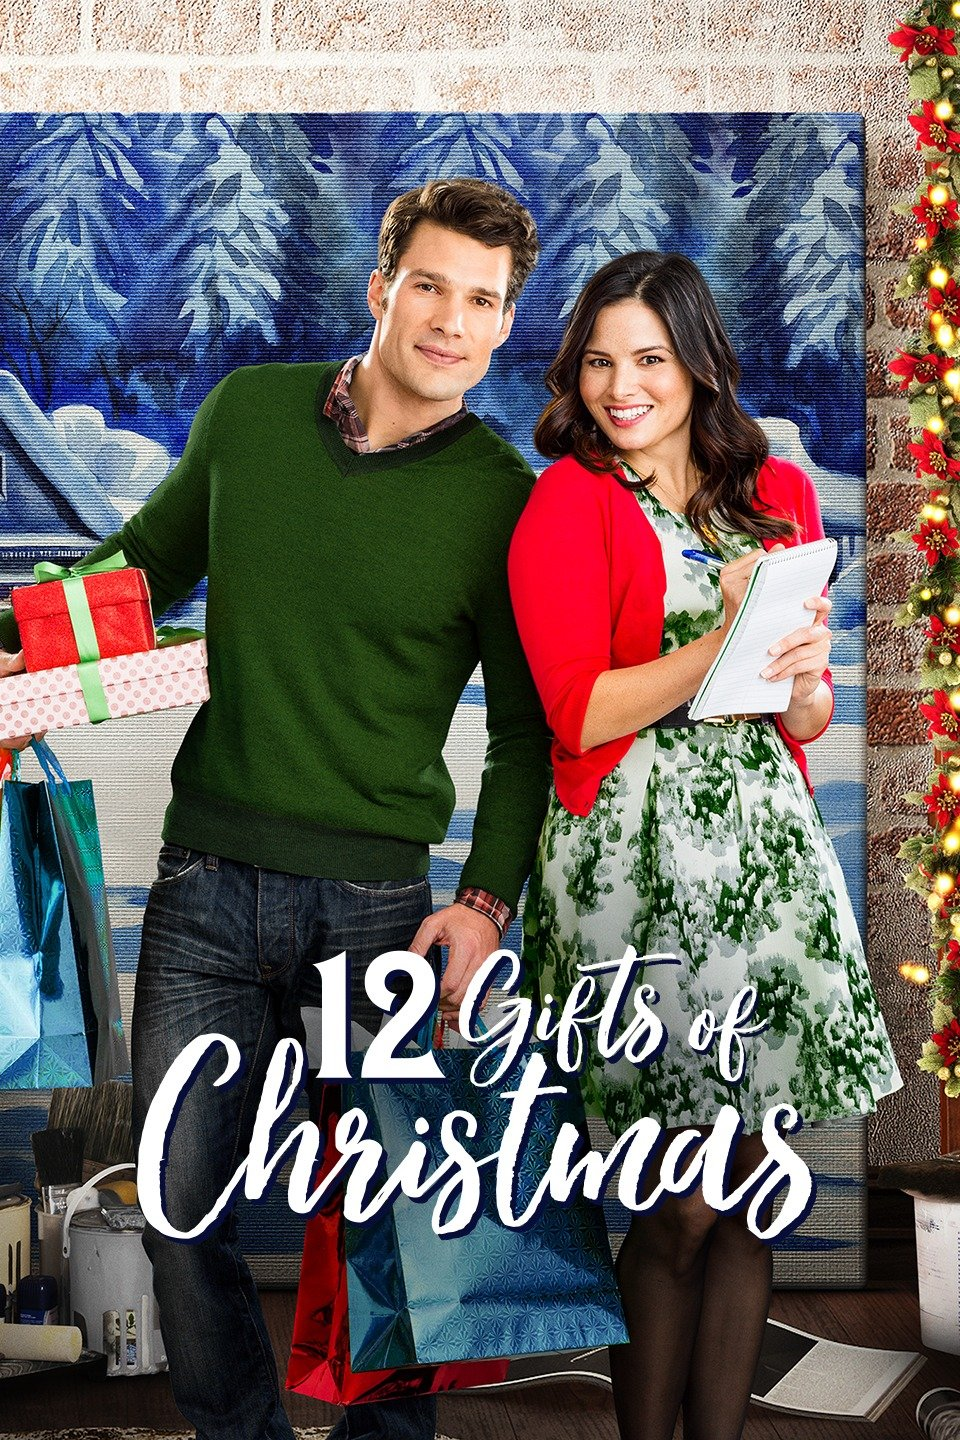 The 12 Gifts Of Christmas (2015)